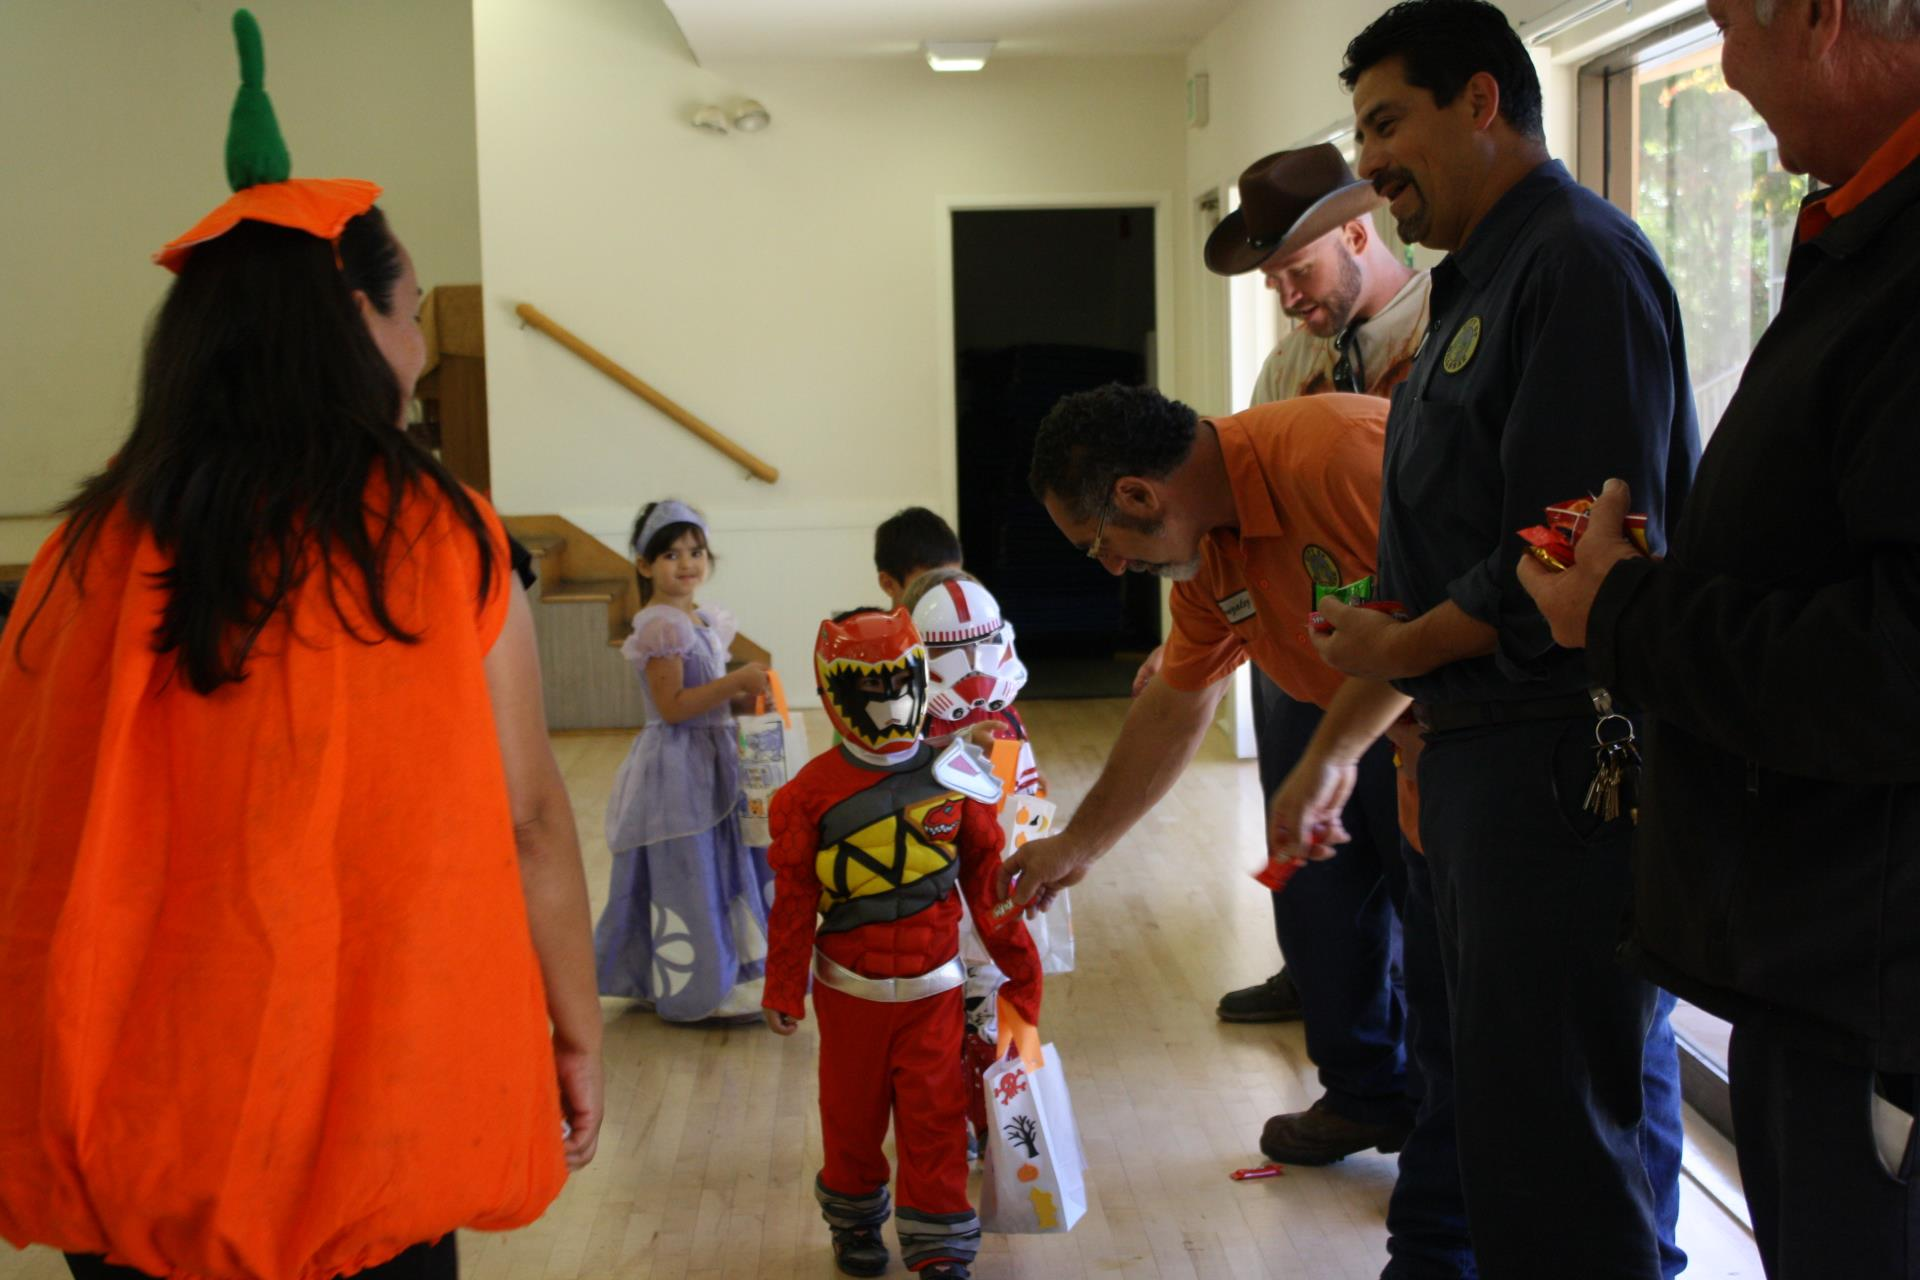 Children dress up and collect candy.